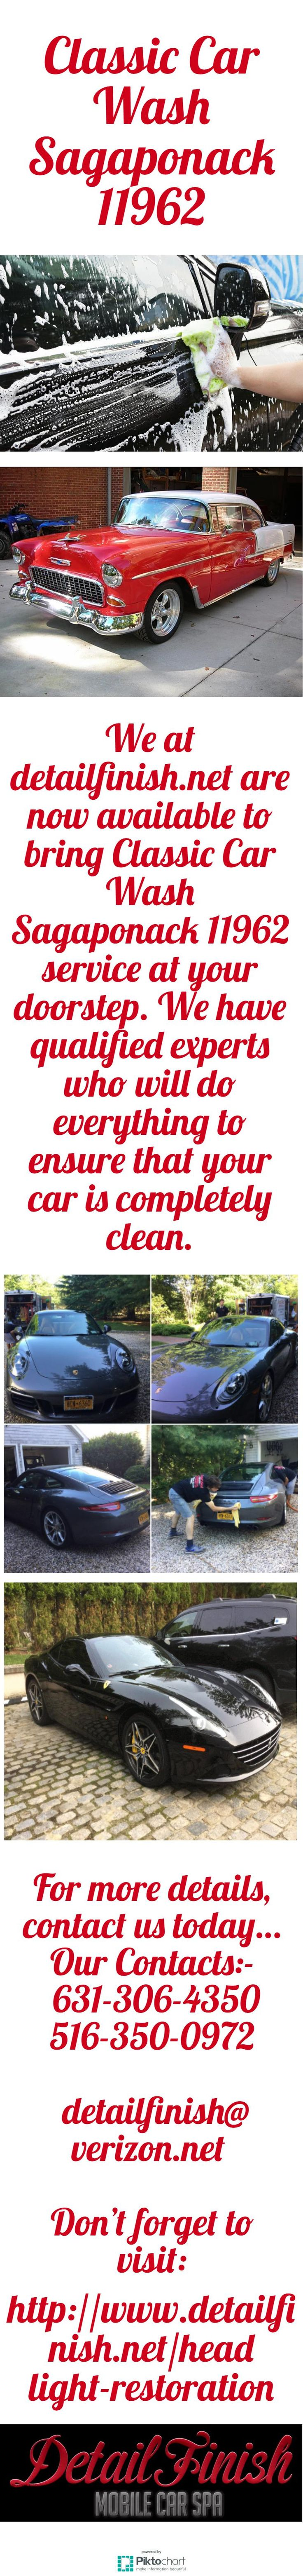 We at detailfinish.net are now available to bring Classic Car Wash Sagaponack 11962 service at your doorstep. We have qualified experts who will do everything to ensure that your car is completely clean. For details, visit our website:  http://www.detailfinish.net/headlight-restoration